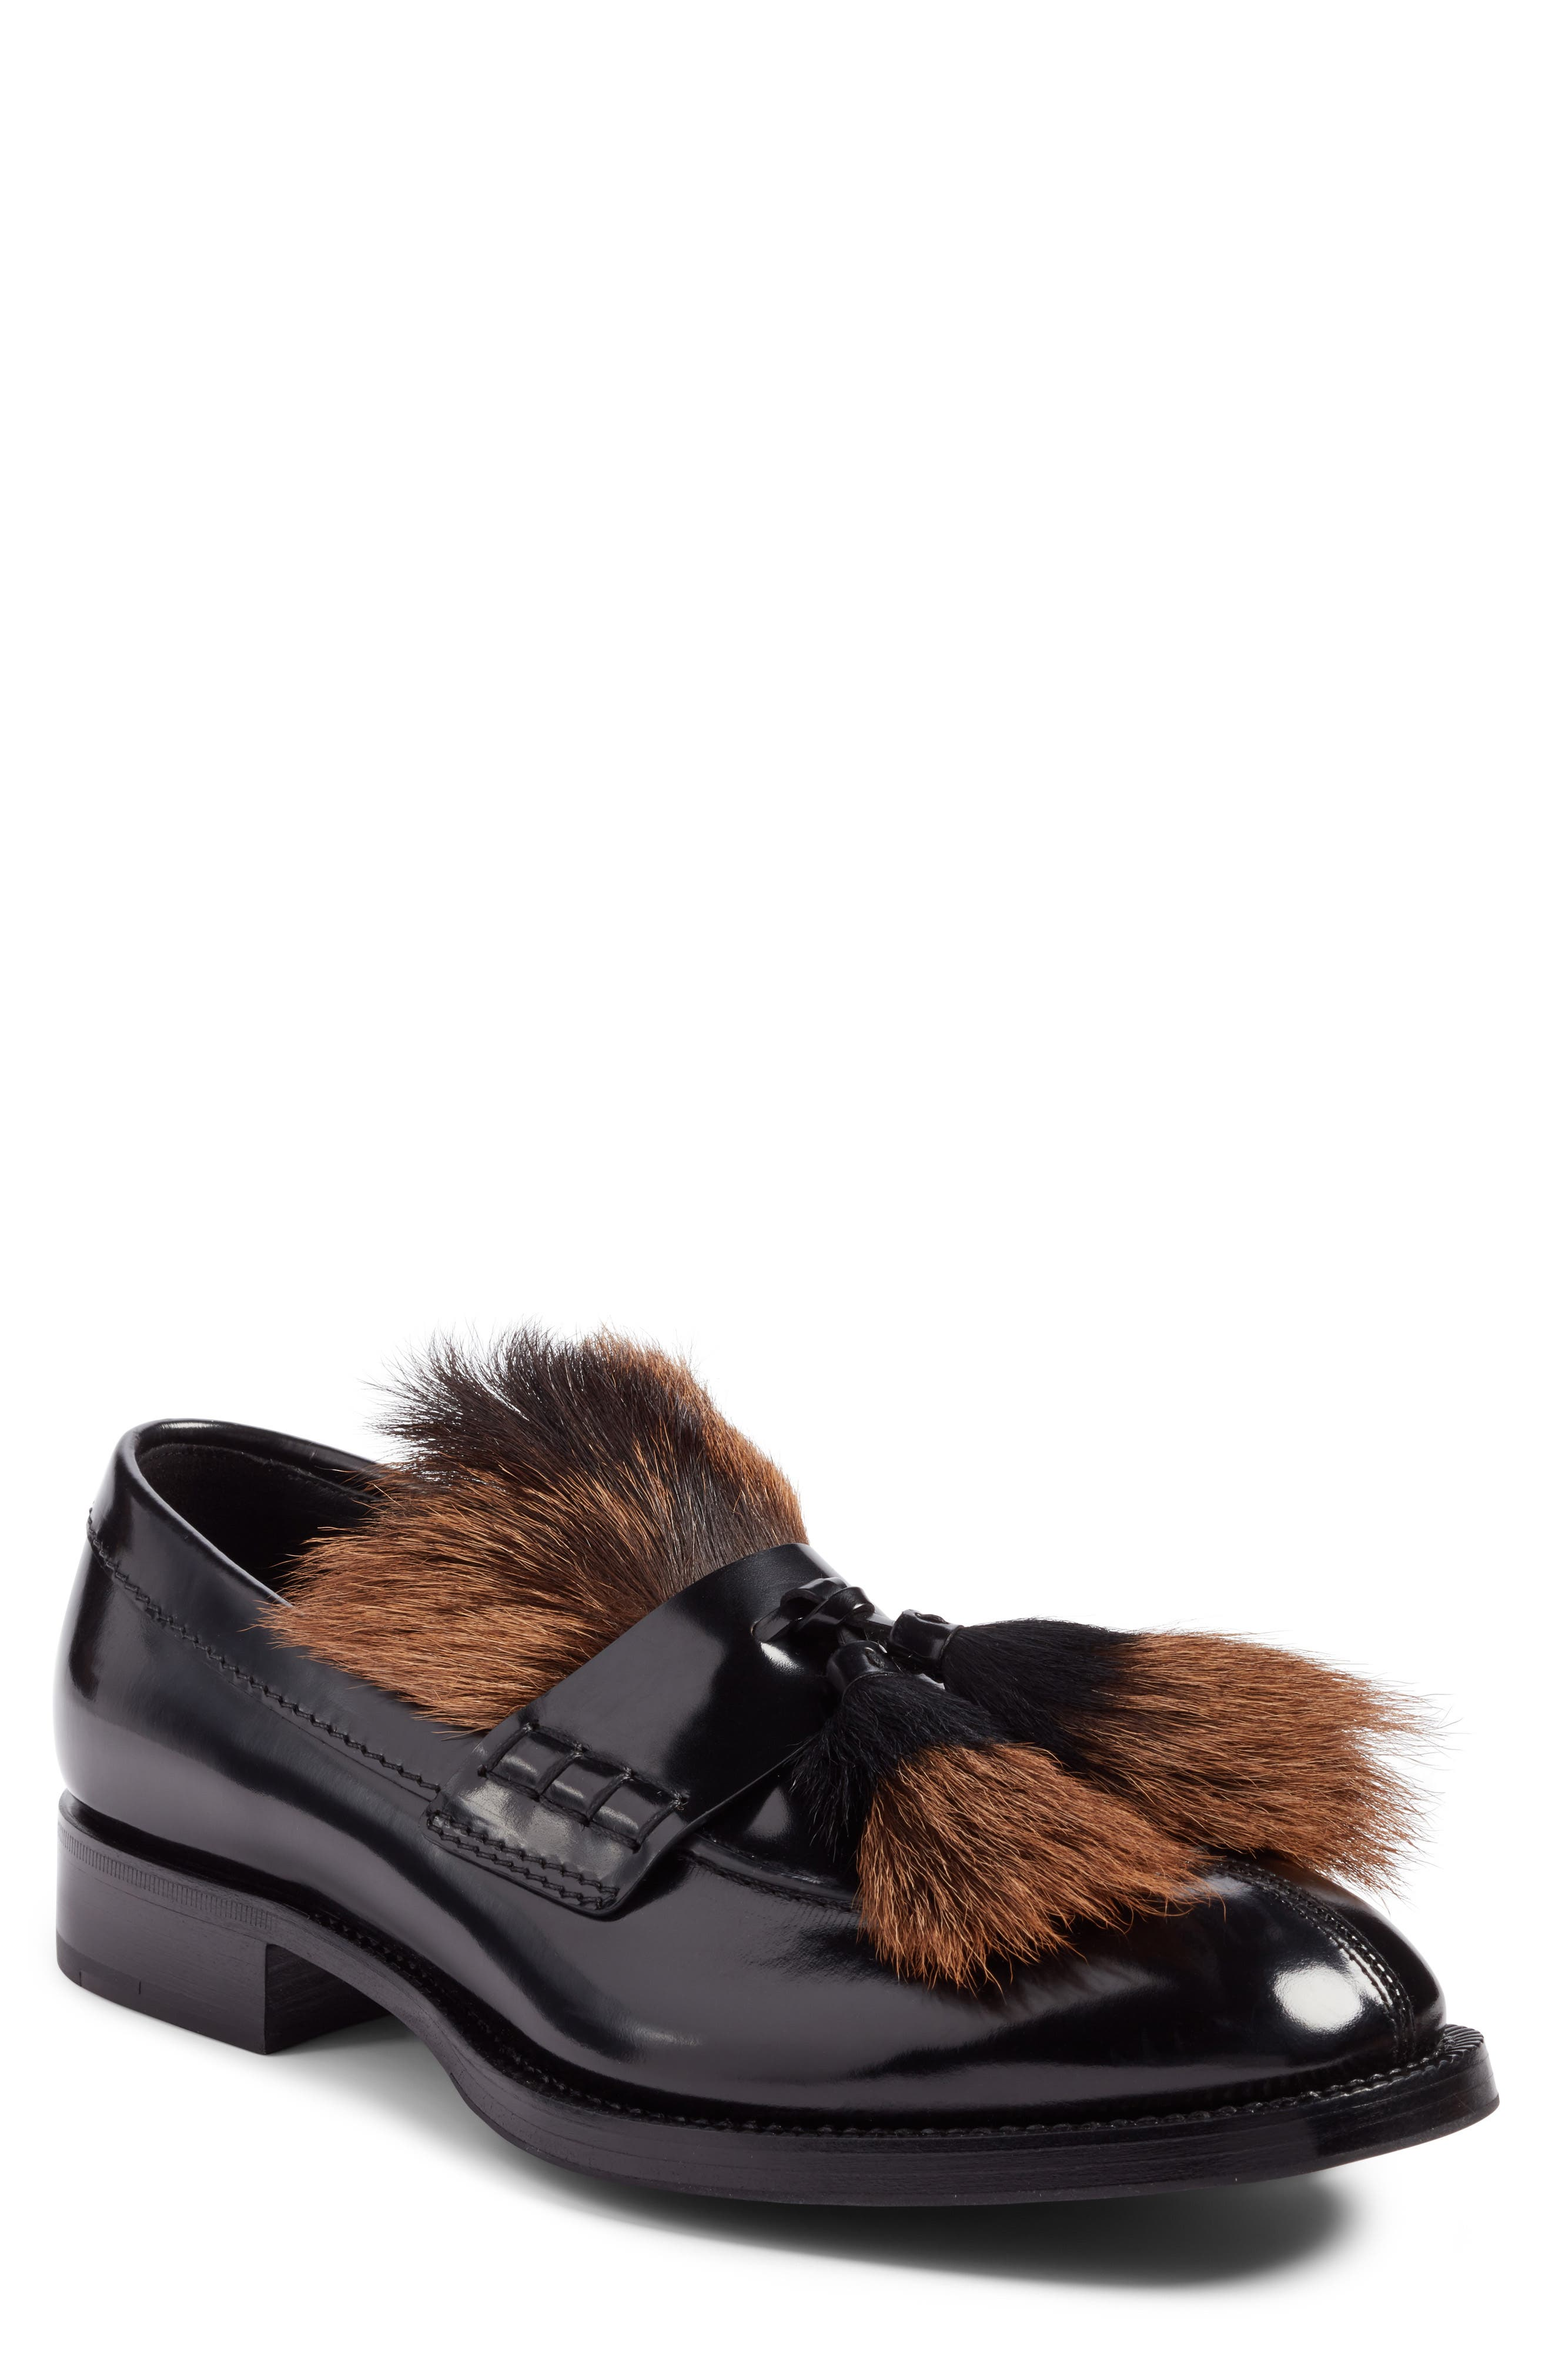 Tassel Loafer with Genuine Goat Hair Trim,                         Main,                         color, 001